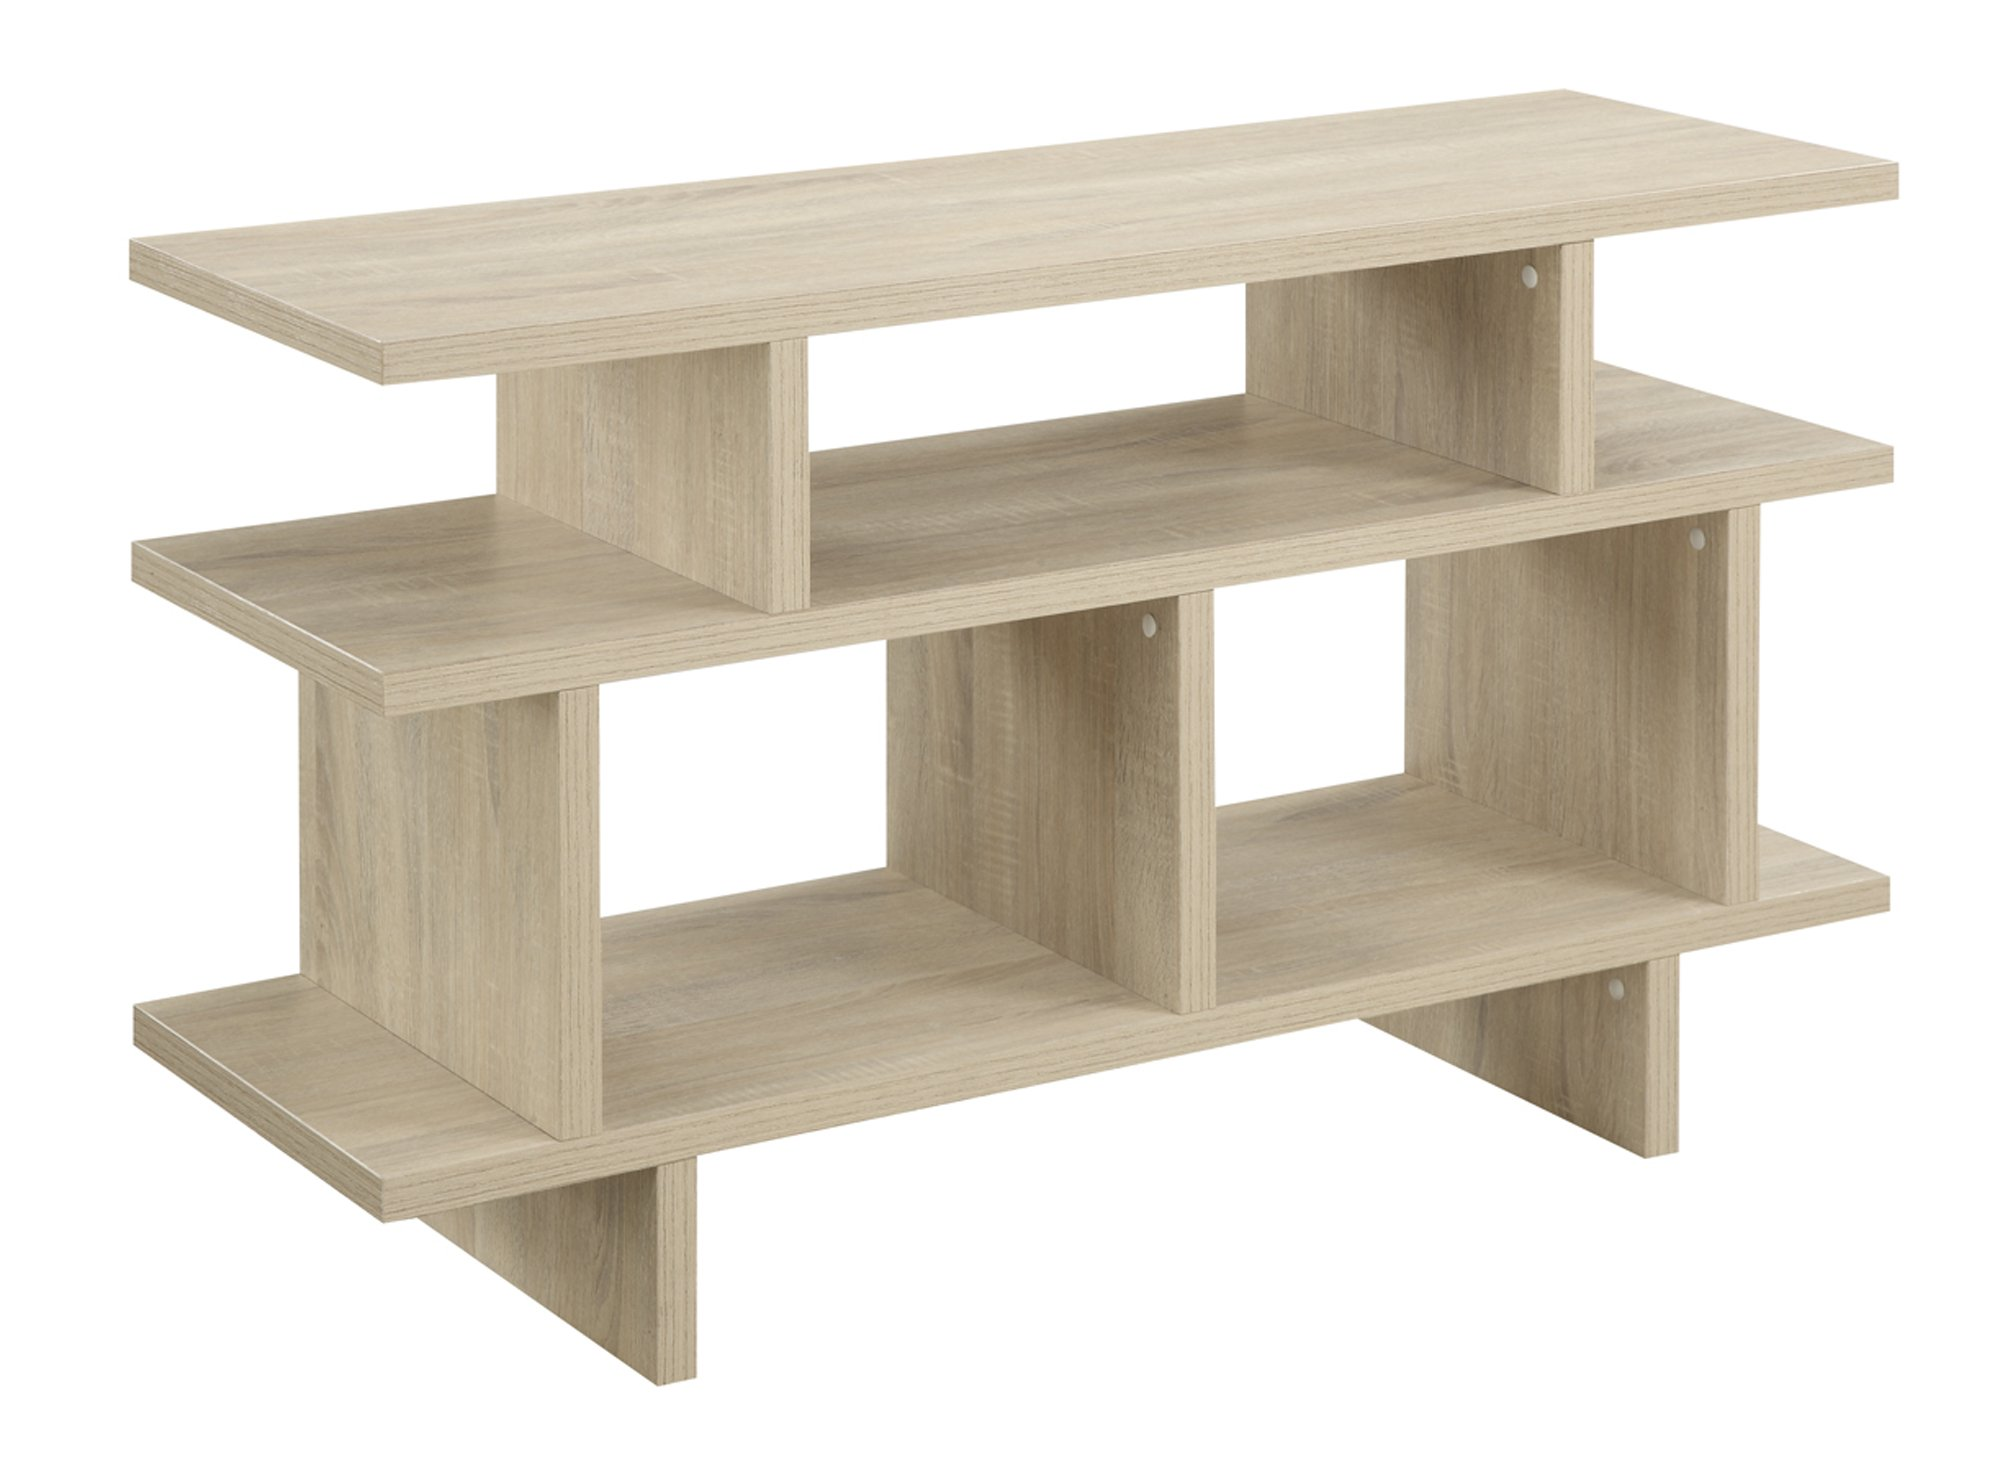 Convenience Concepts Designs2Go Key West TV Stand Console, 48-Inch, Weathered White by Convenience Concepts